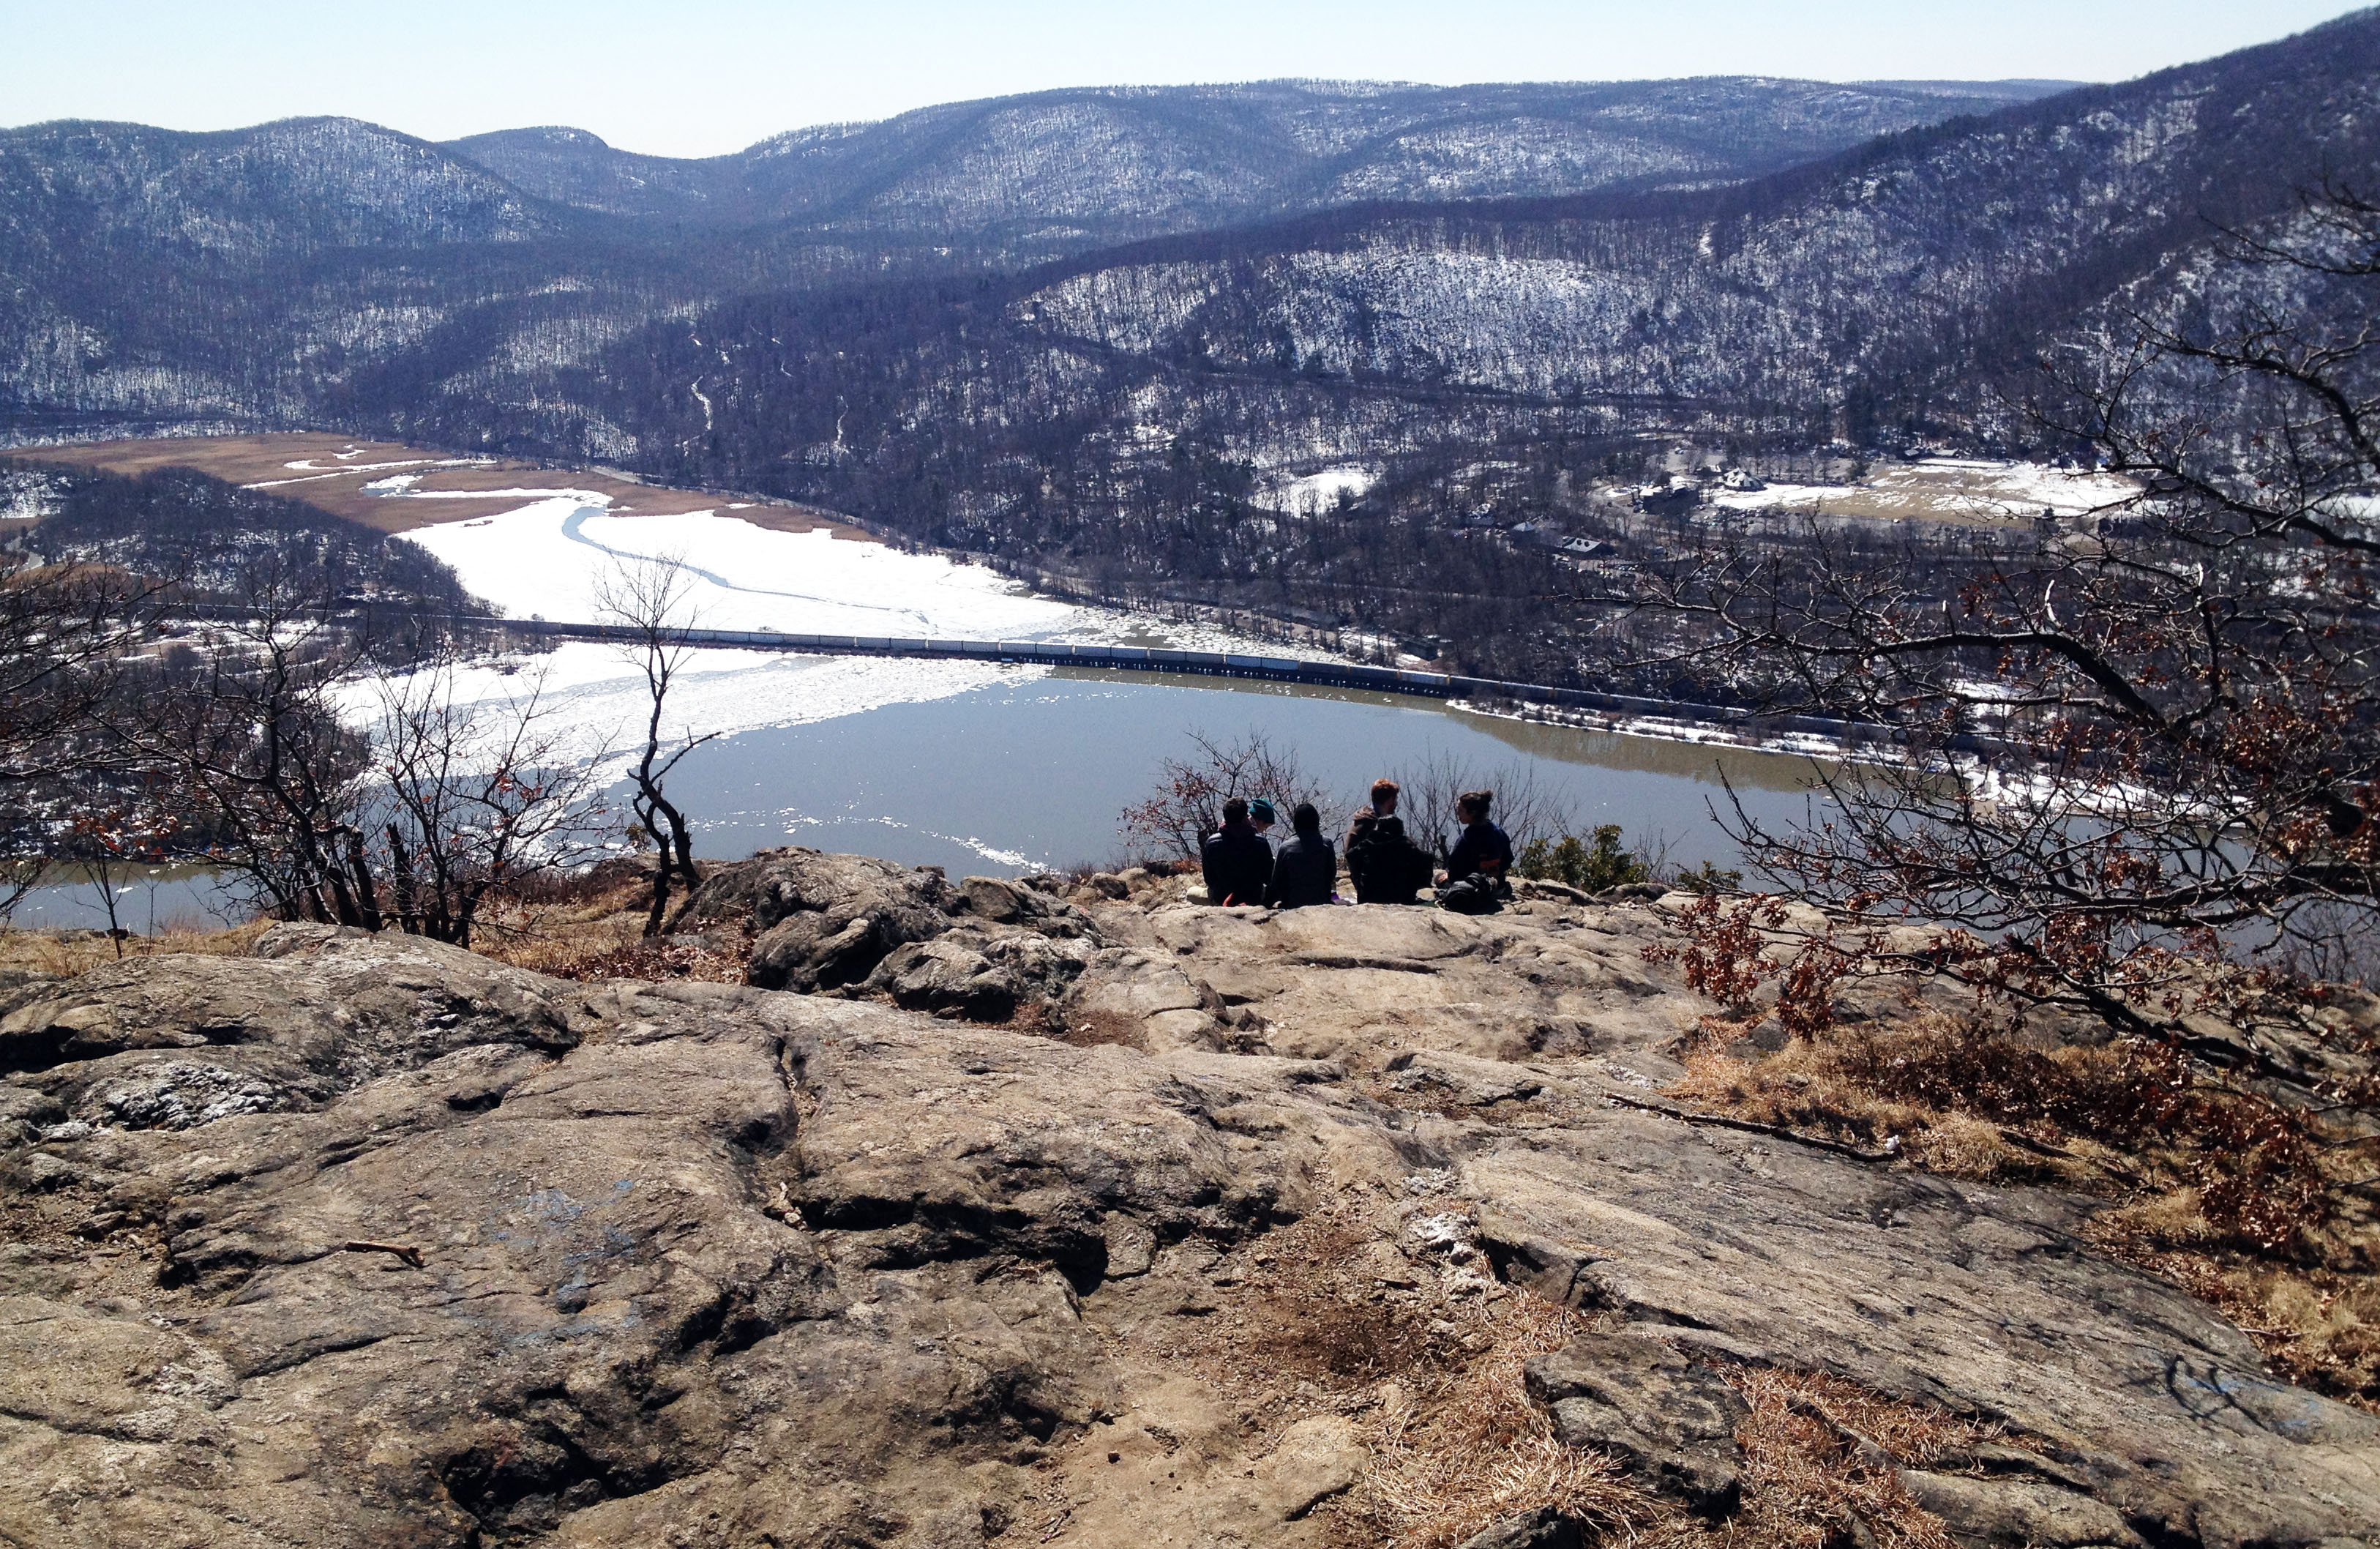 Students sit on the cold rocks of Anthony's Nose, overlooking the Hudson River in spring.